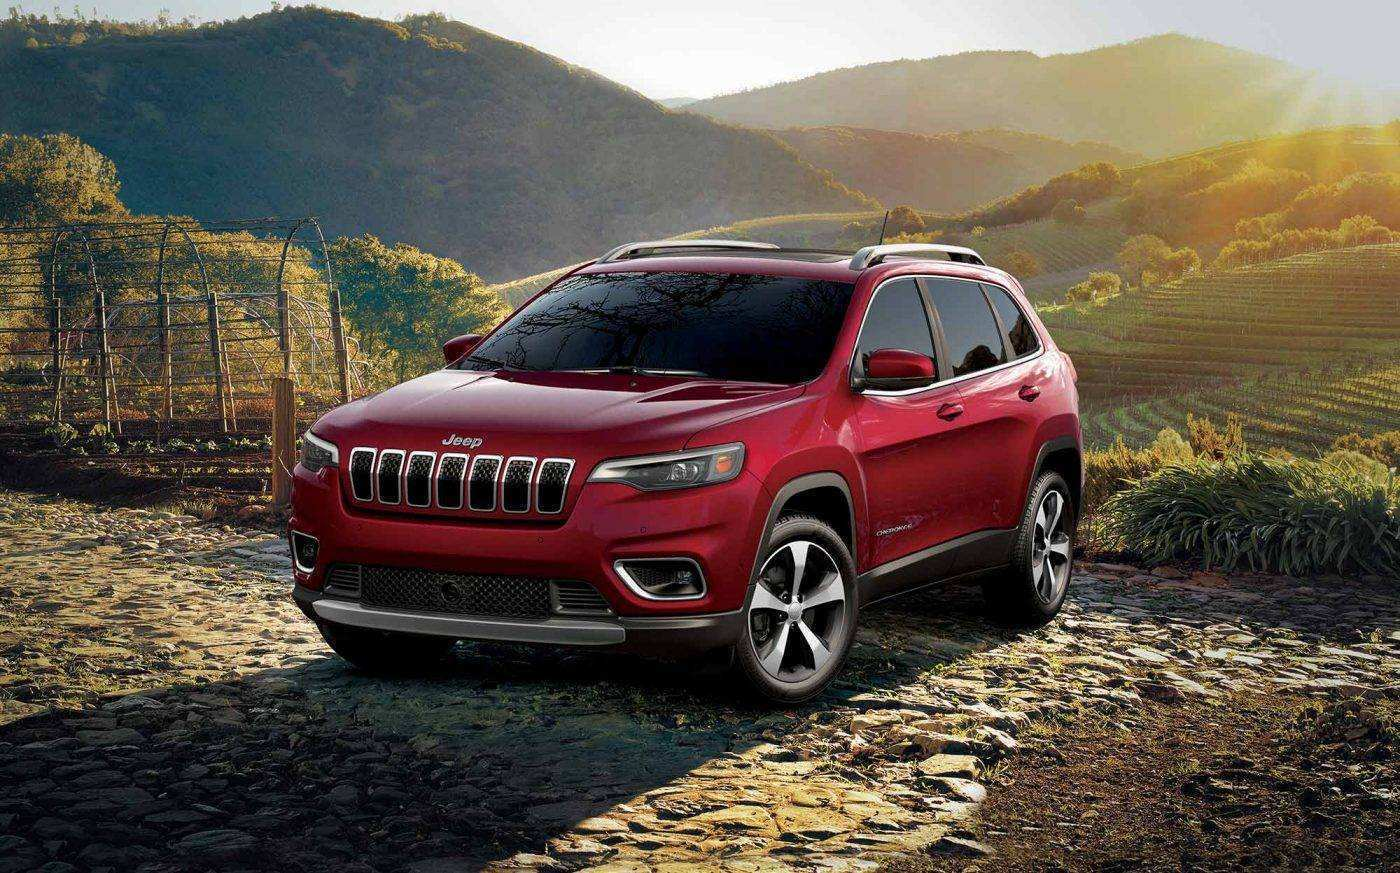 84 Concept of 2019 Jeep Suv Concept for 2019 Jeep Suv